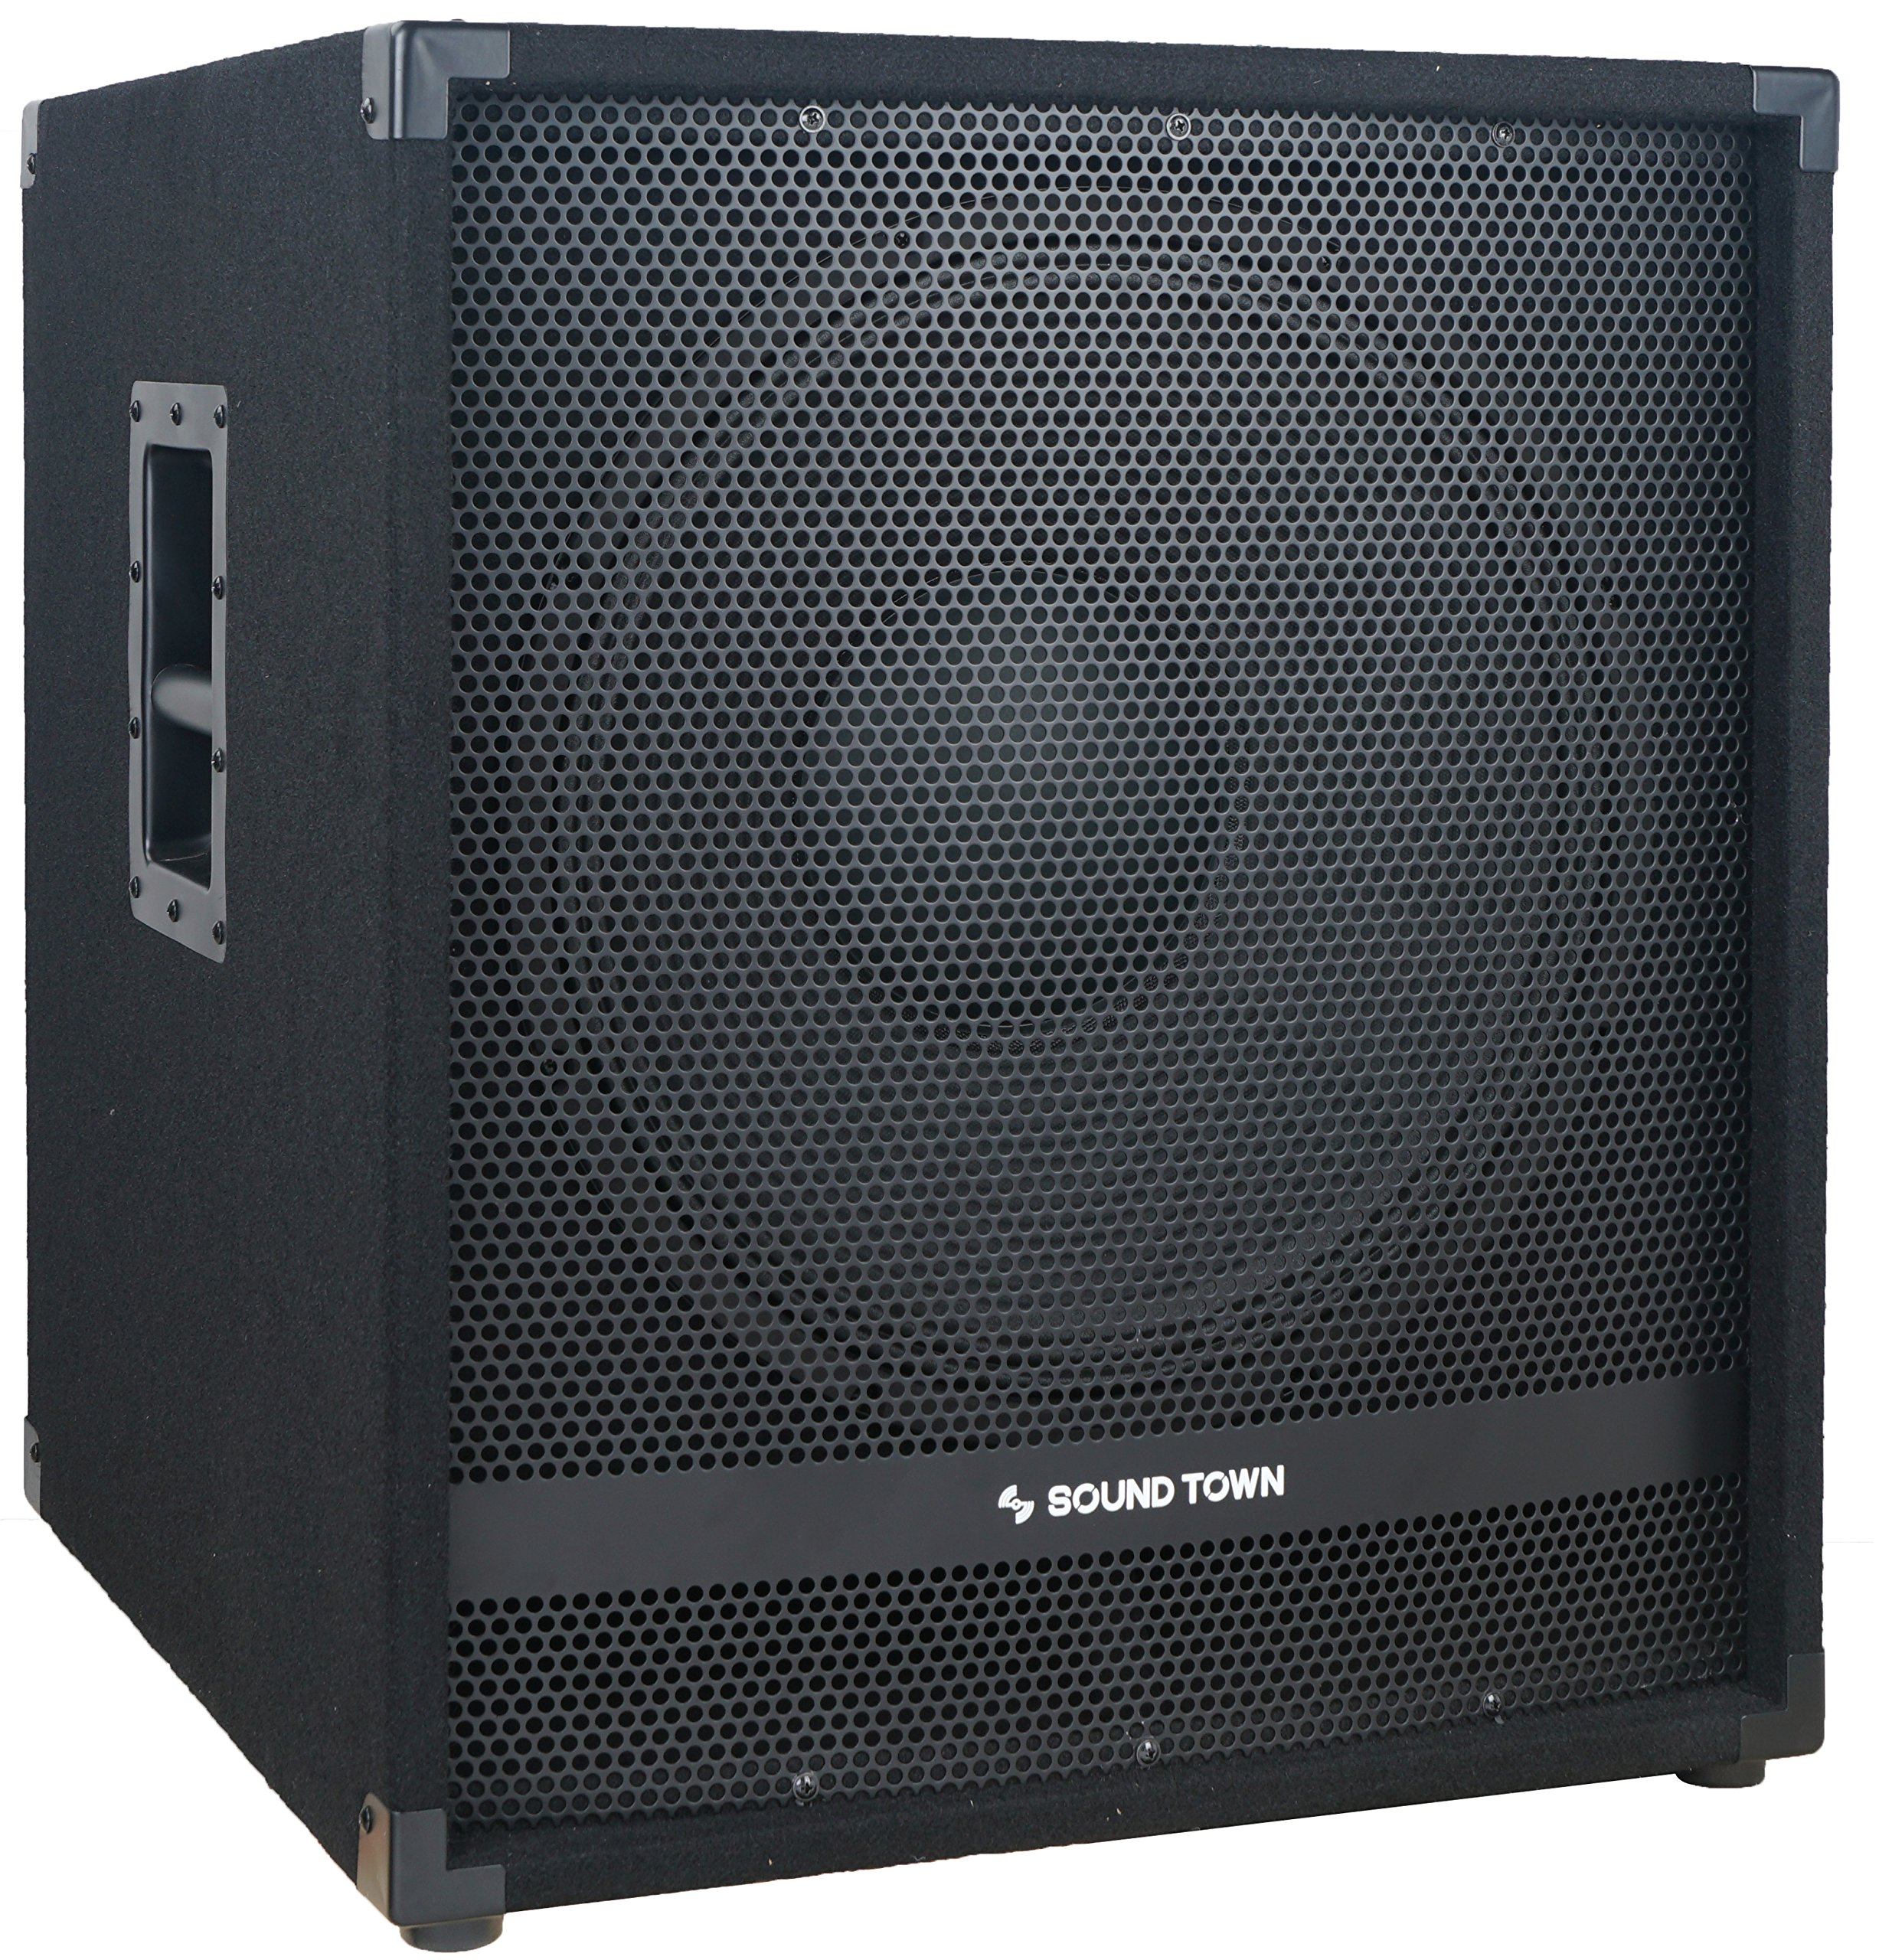 Sound Town METIS Series 2400 Watts 18'' Powered Subwoofer with Class-D Amplifier, 4-inch Voice Coil (METIS-18SDPW) by Sound Town